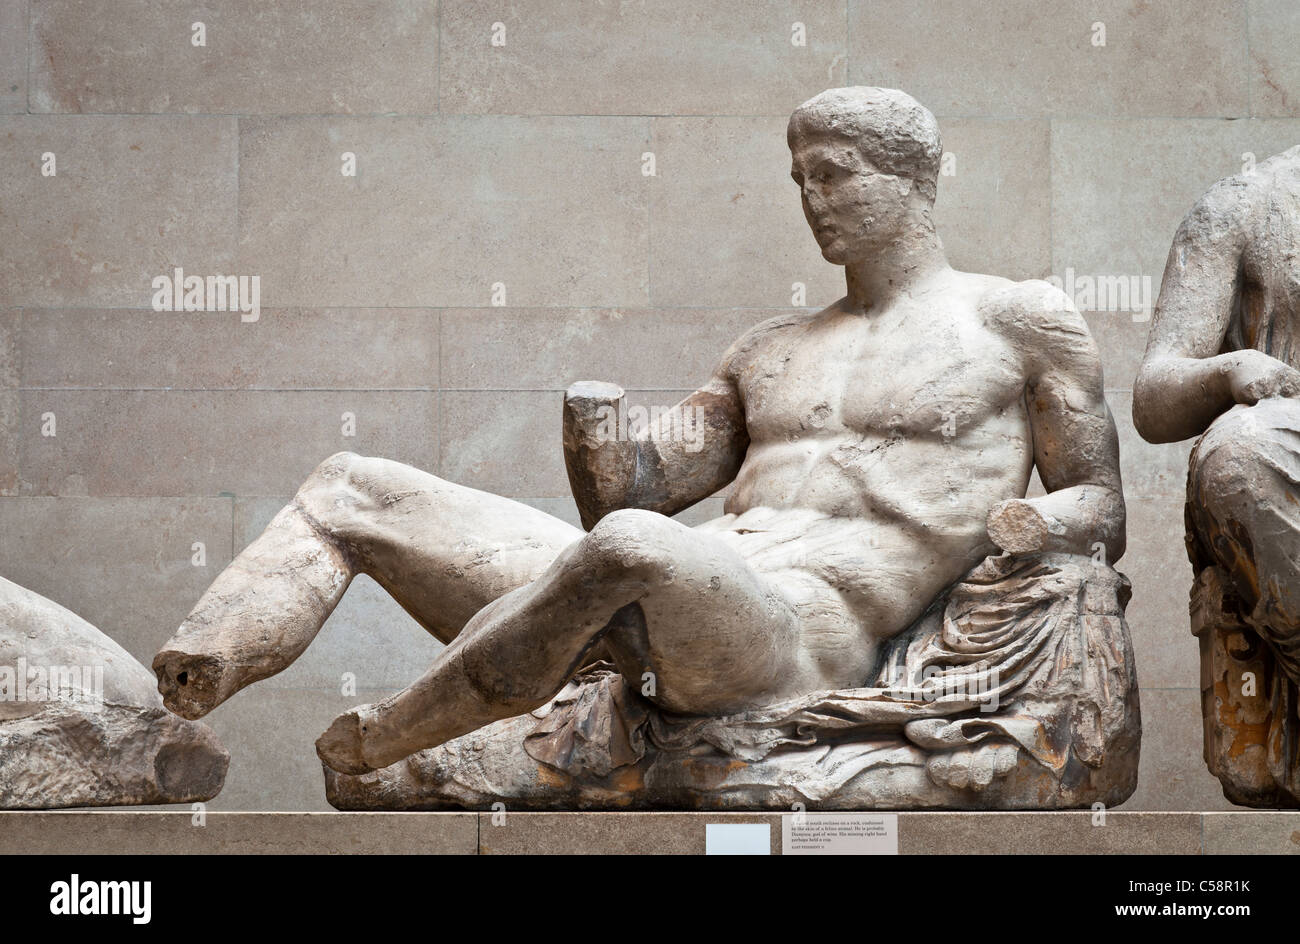 Figure of Dionysos or possibly Ares from the West Pediment of the Parthenon. - Stock Image